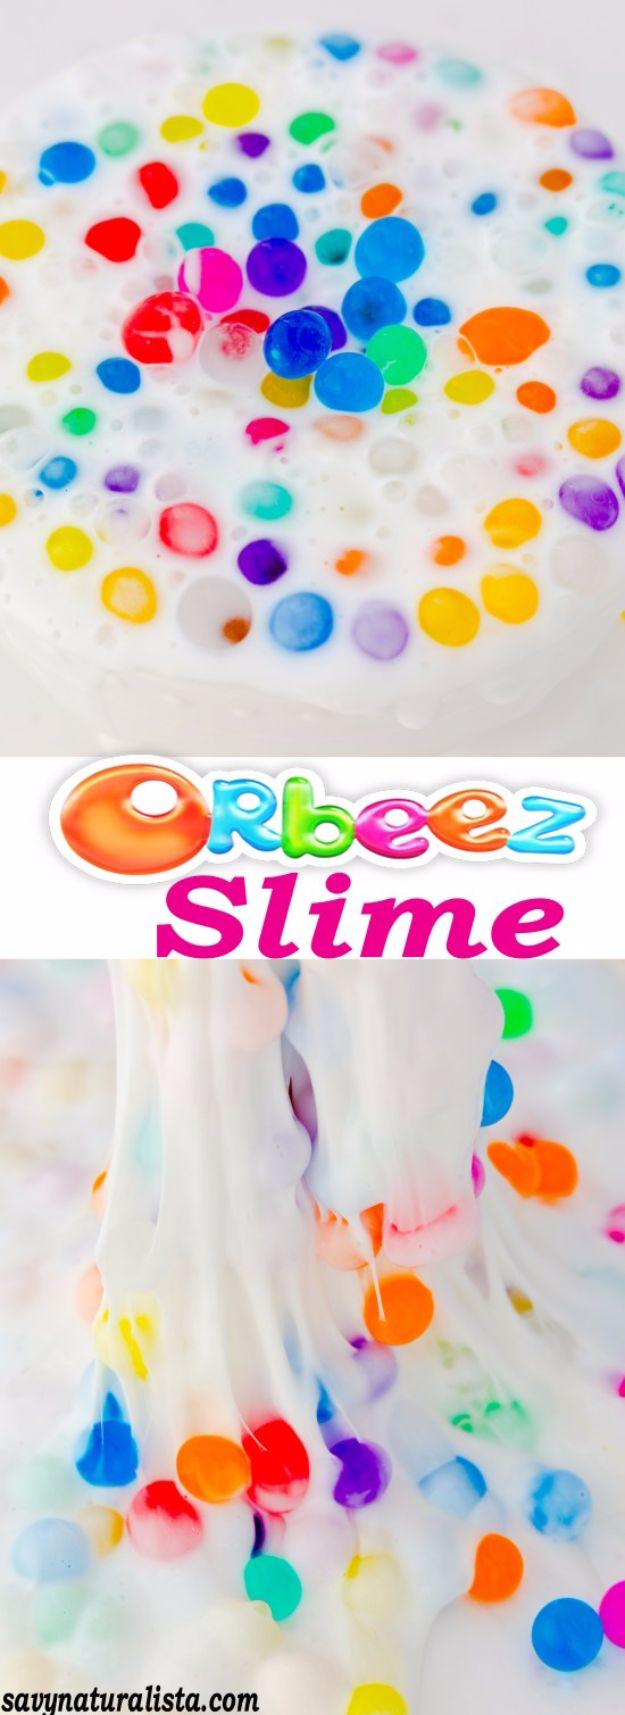 Borax Free Slime Recipes - Toothpaste Orbeez Slime - Safe Slimes To Make Without Glue - How To Make Fluffy Slime With Shaving Cream - Easy 3 Ingredients Glitter Slime, Clear, Galaxy, Best DIY Slime Tutorials With Step by Step Instructions #slimerecipes #slime #kidscrafts #teencrafts